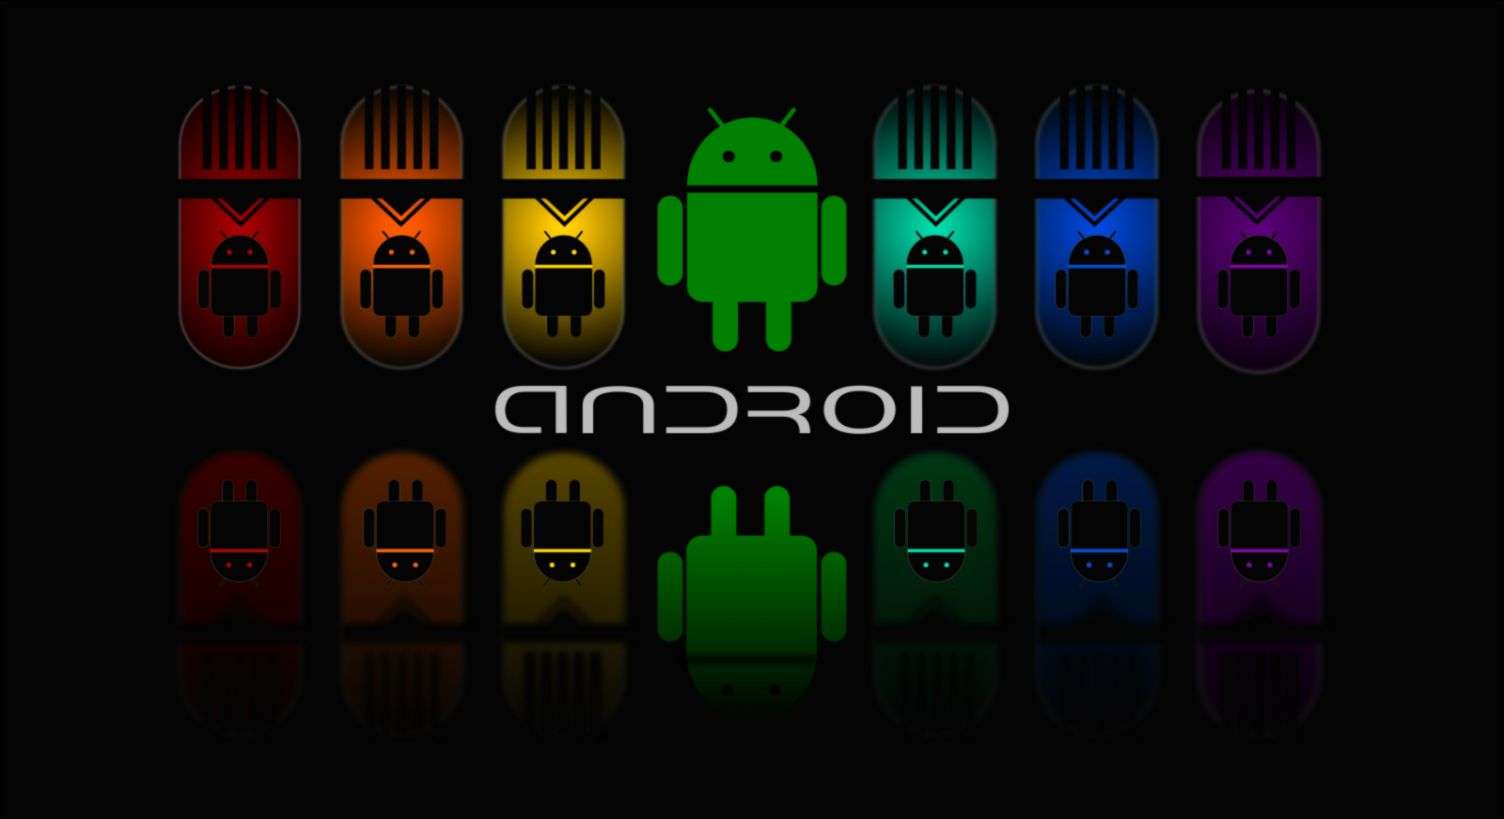 Android logo hd wallpaper free download best image background view original size free download wallpapers ipad 012 android logo techbeasts voltagebd Gallery